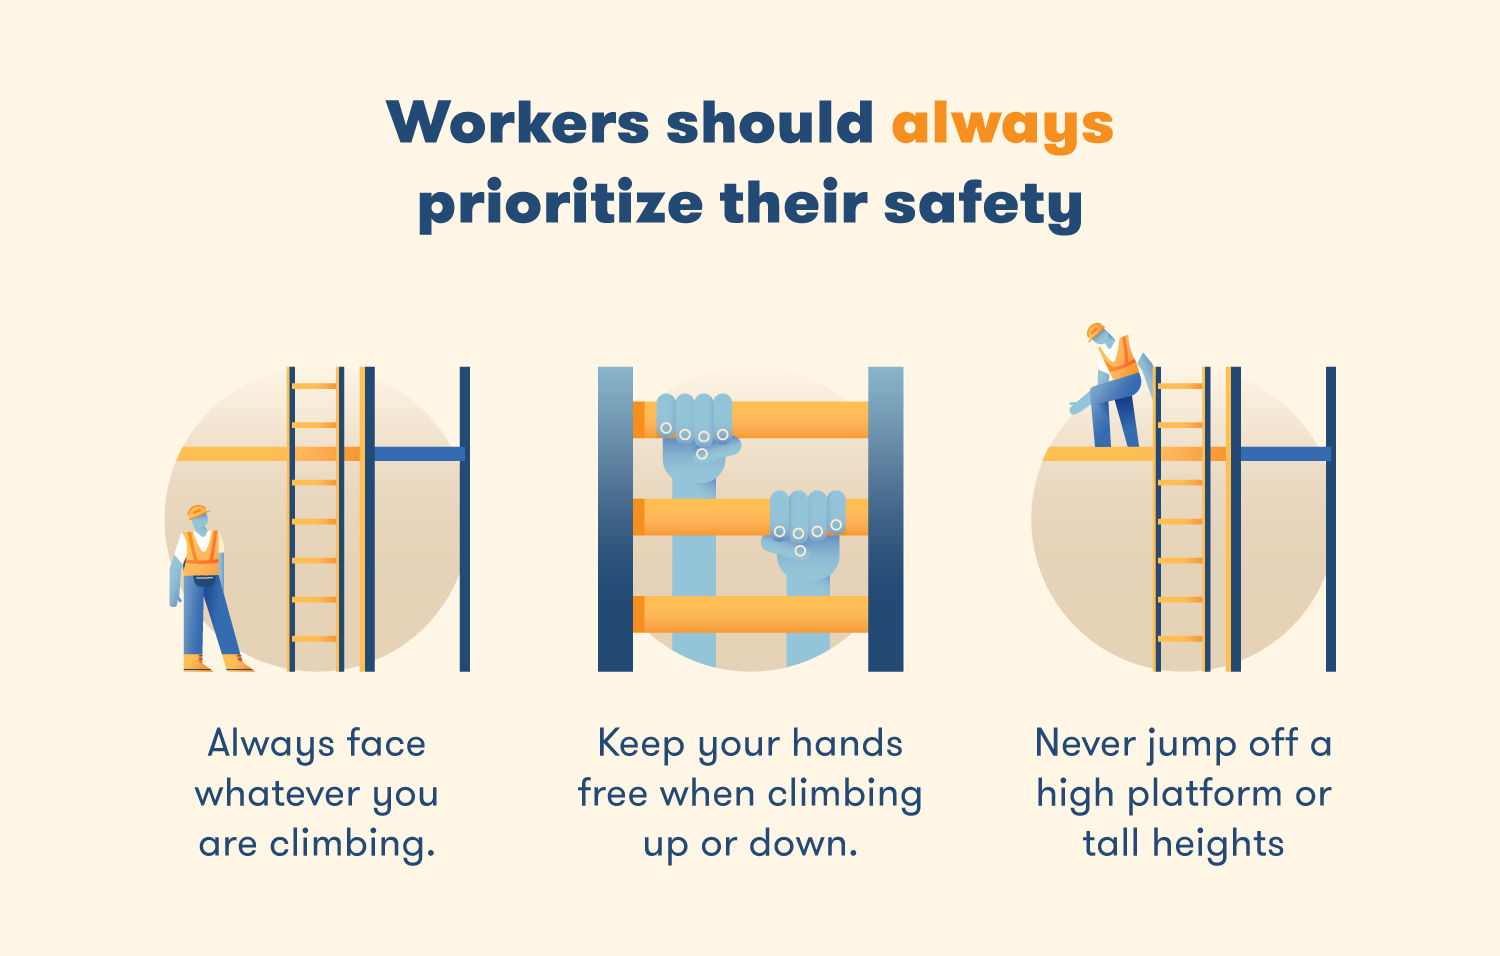 Workers should always prioritize their safety